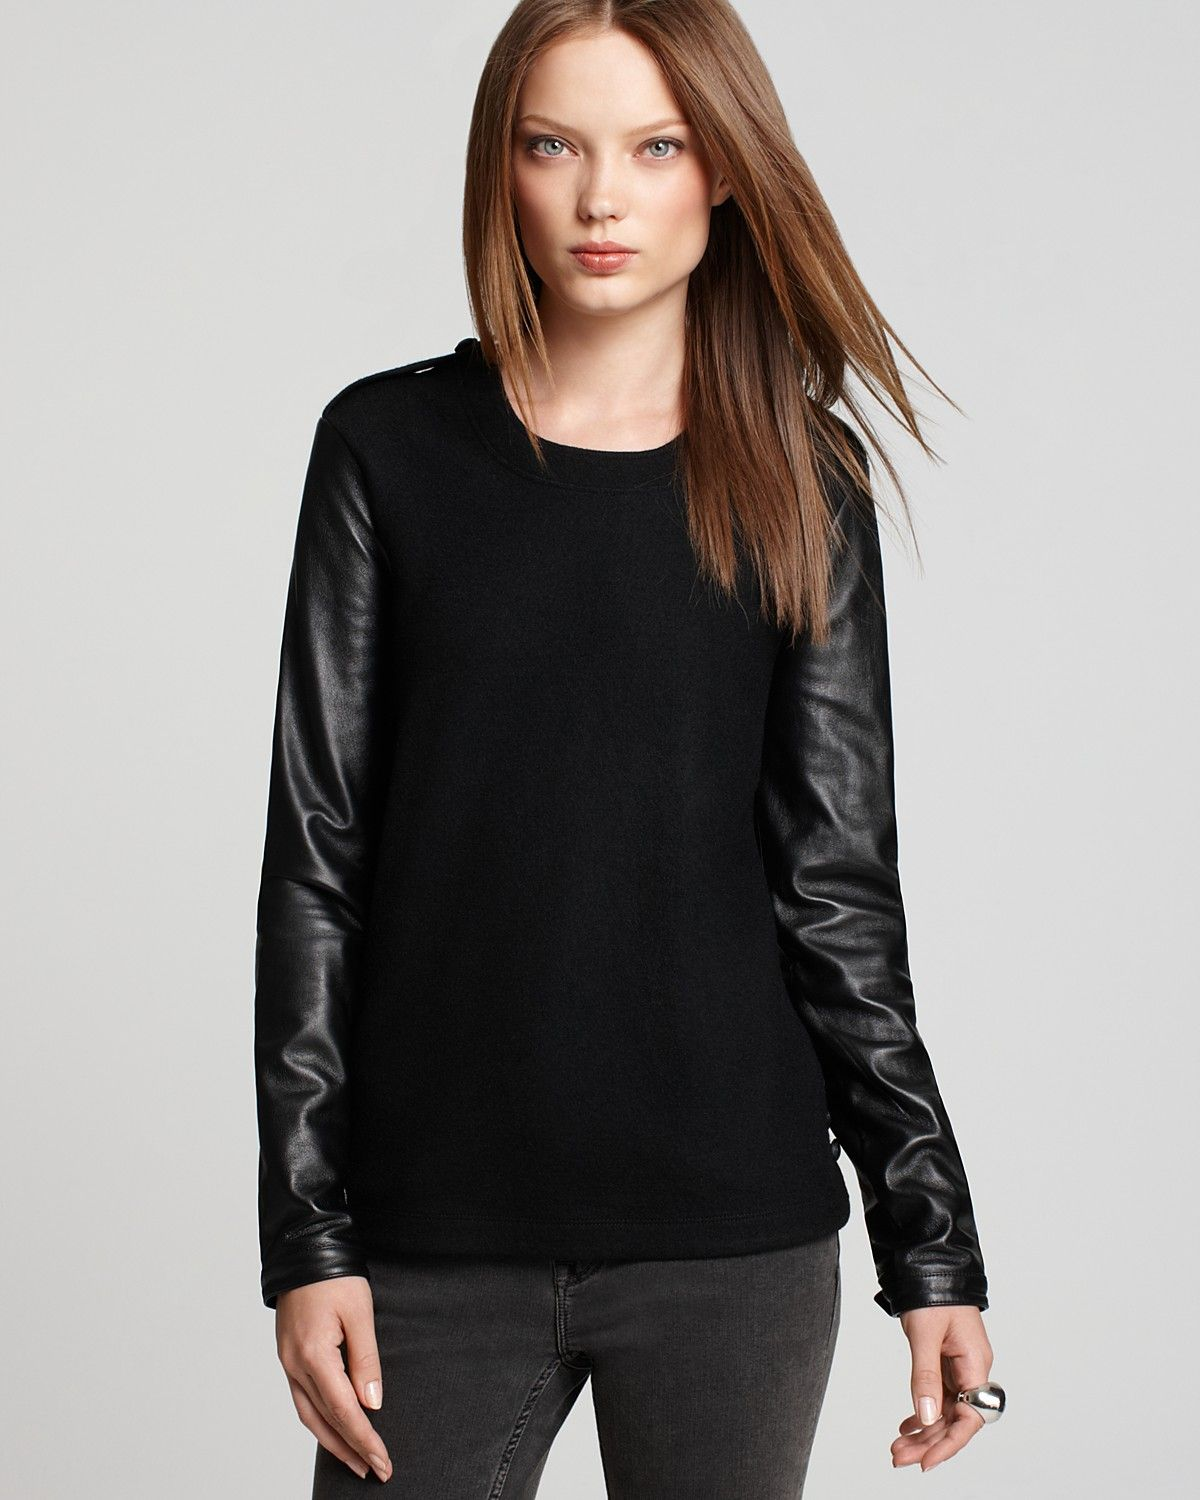 Burberry Brit Long Sleeve Crew Neck Sweater With Leather Sleeves